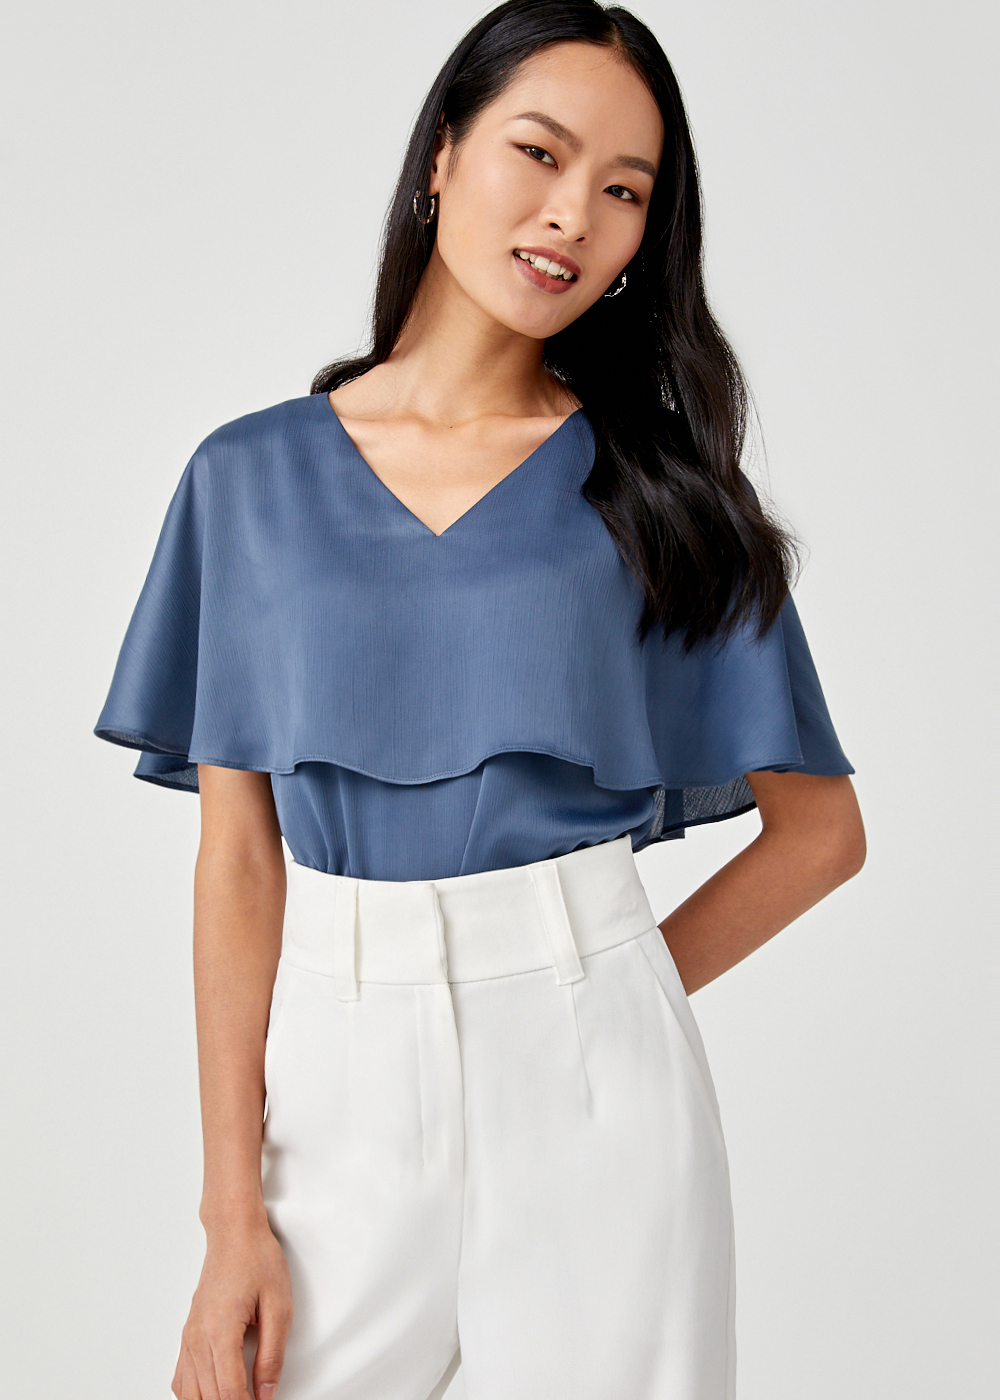 Maxima Cape Overlay Top